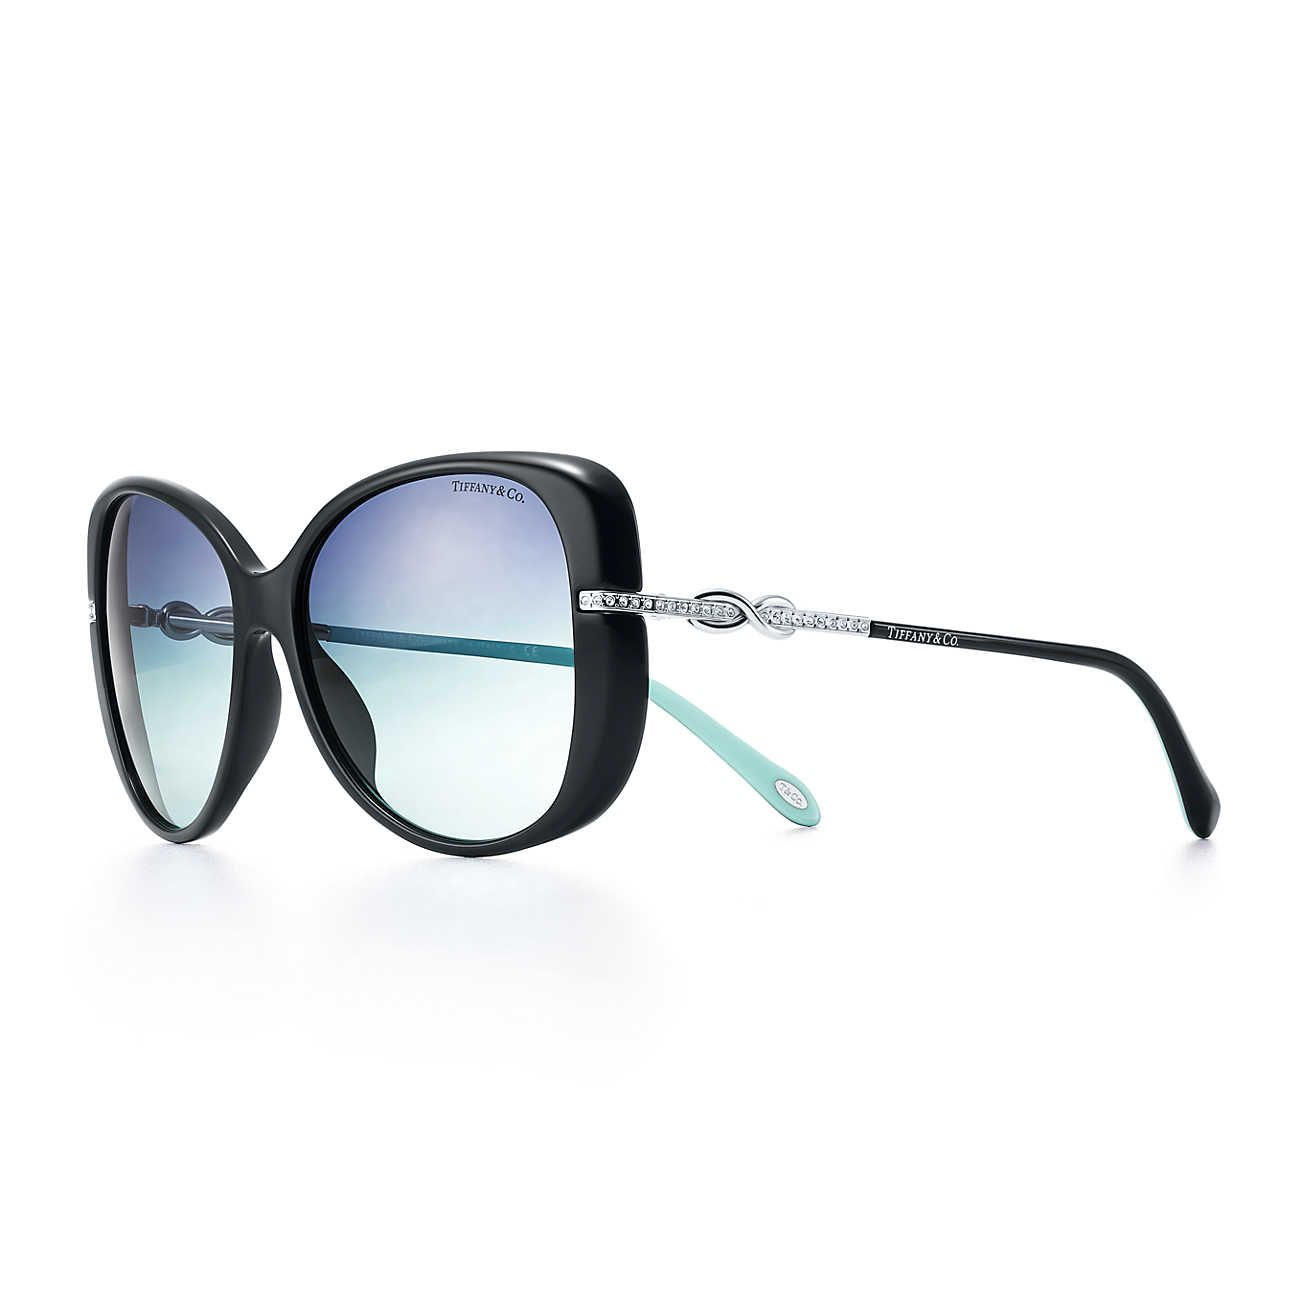 6e81cd3b9a3b Tiffany Infinity butterfly sunglasses in black and Tiffany Blue acetate.